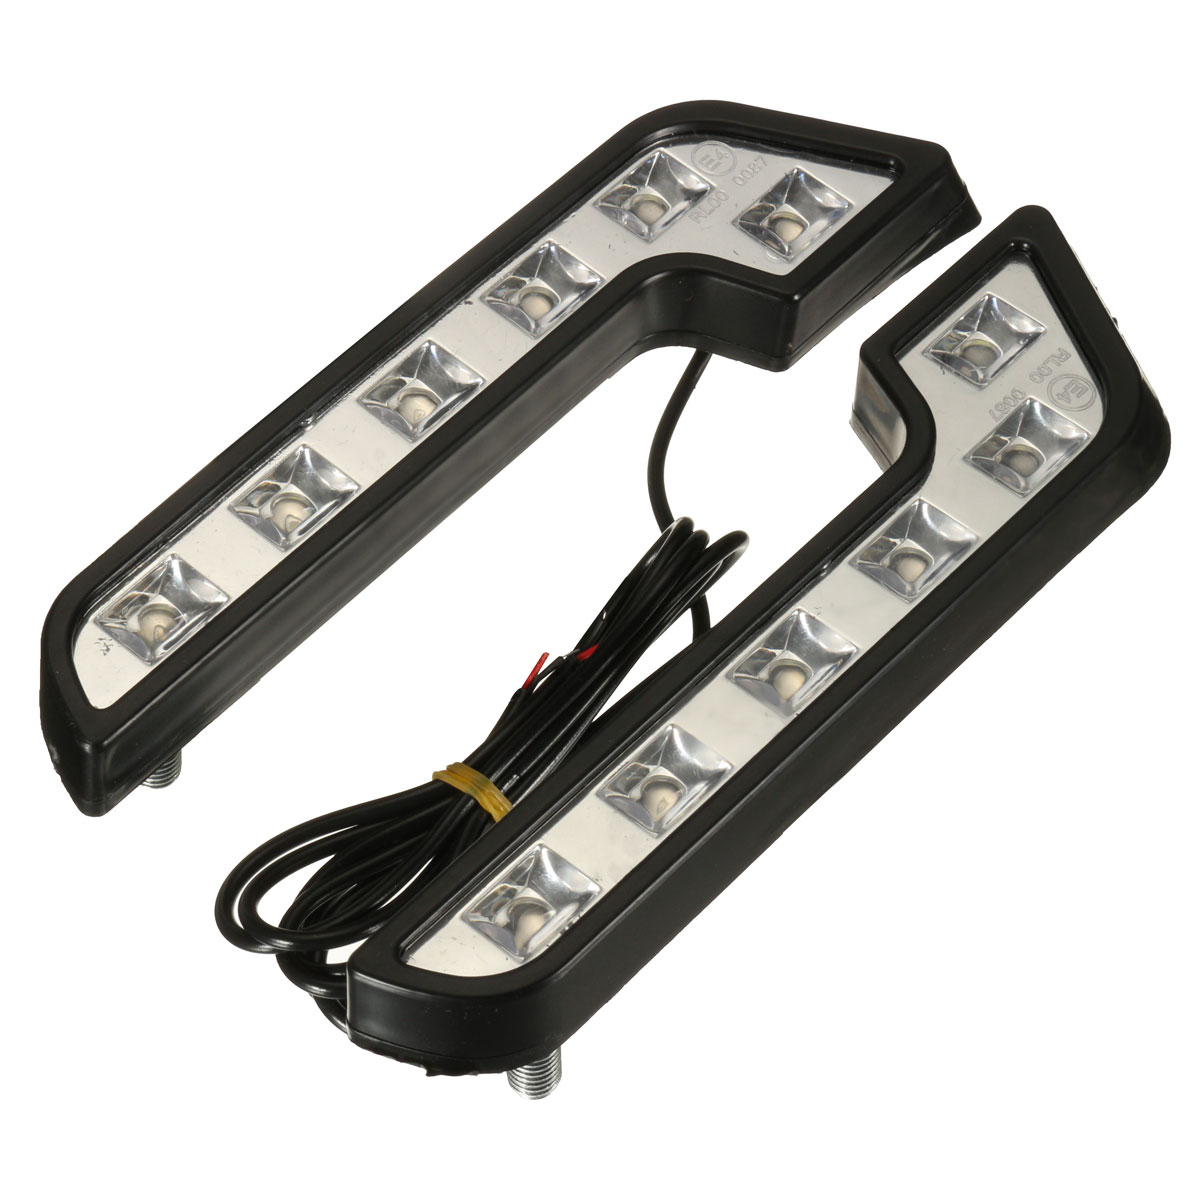 Pair 12V 5W L Shaped White Car VAN Driving Lamp LED DRL Daytime Running Fog Light